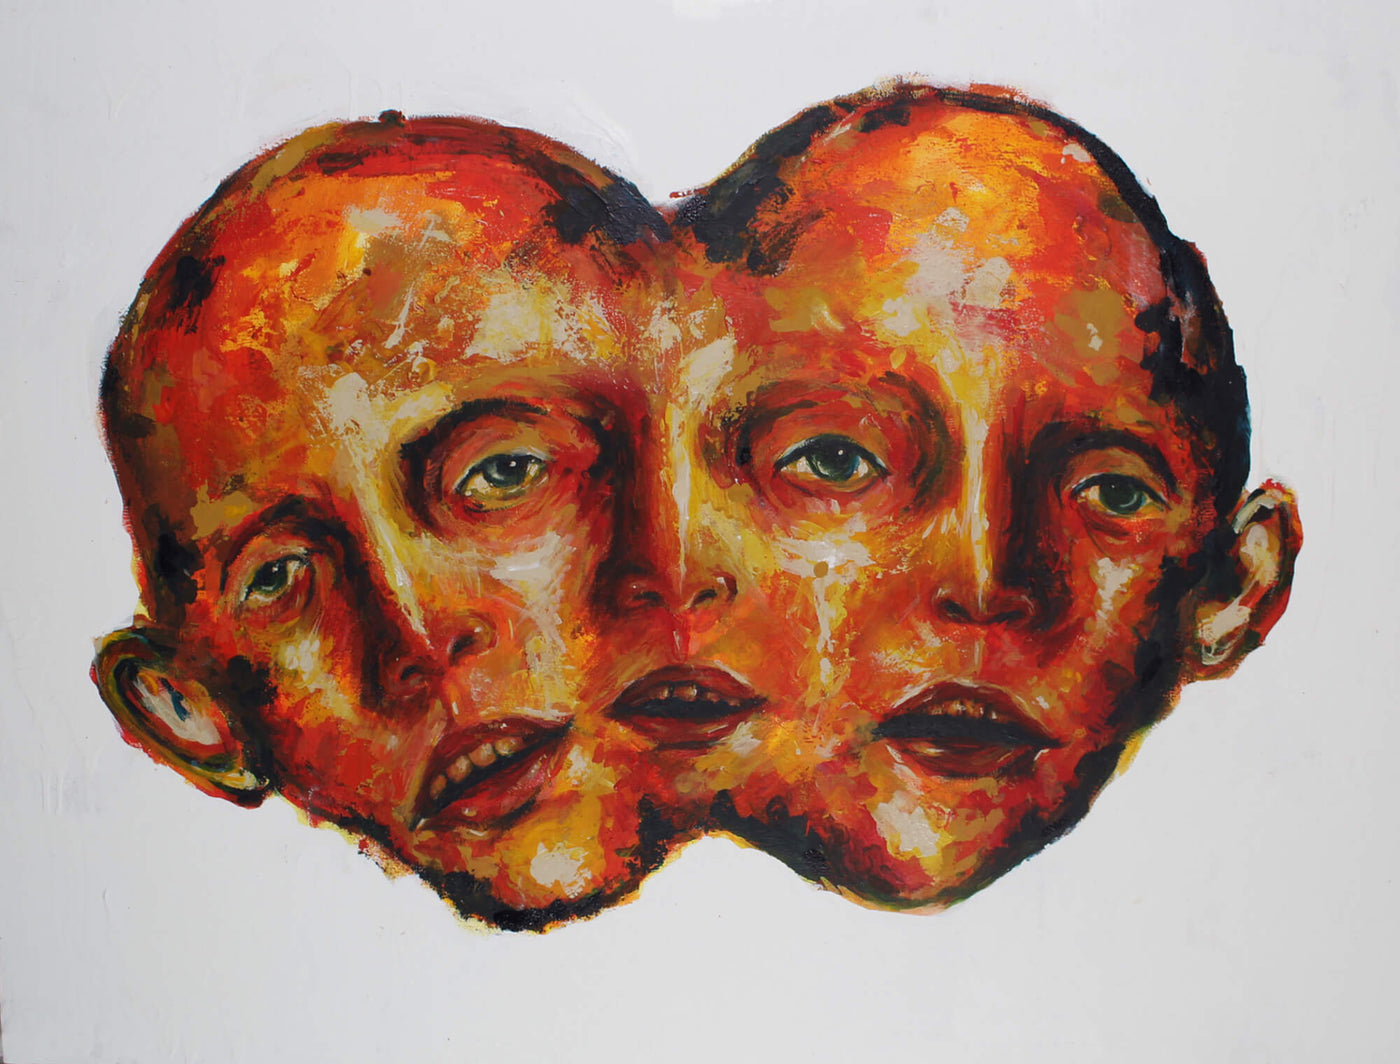 Acrylic abstract painting of red two headed three faces man by Valeria Mercado